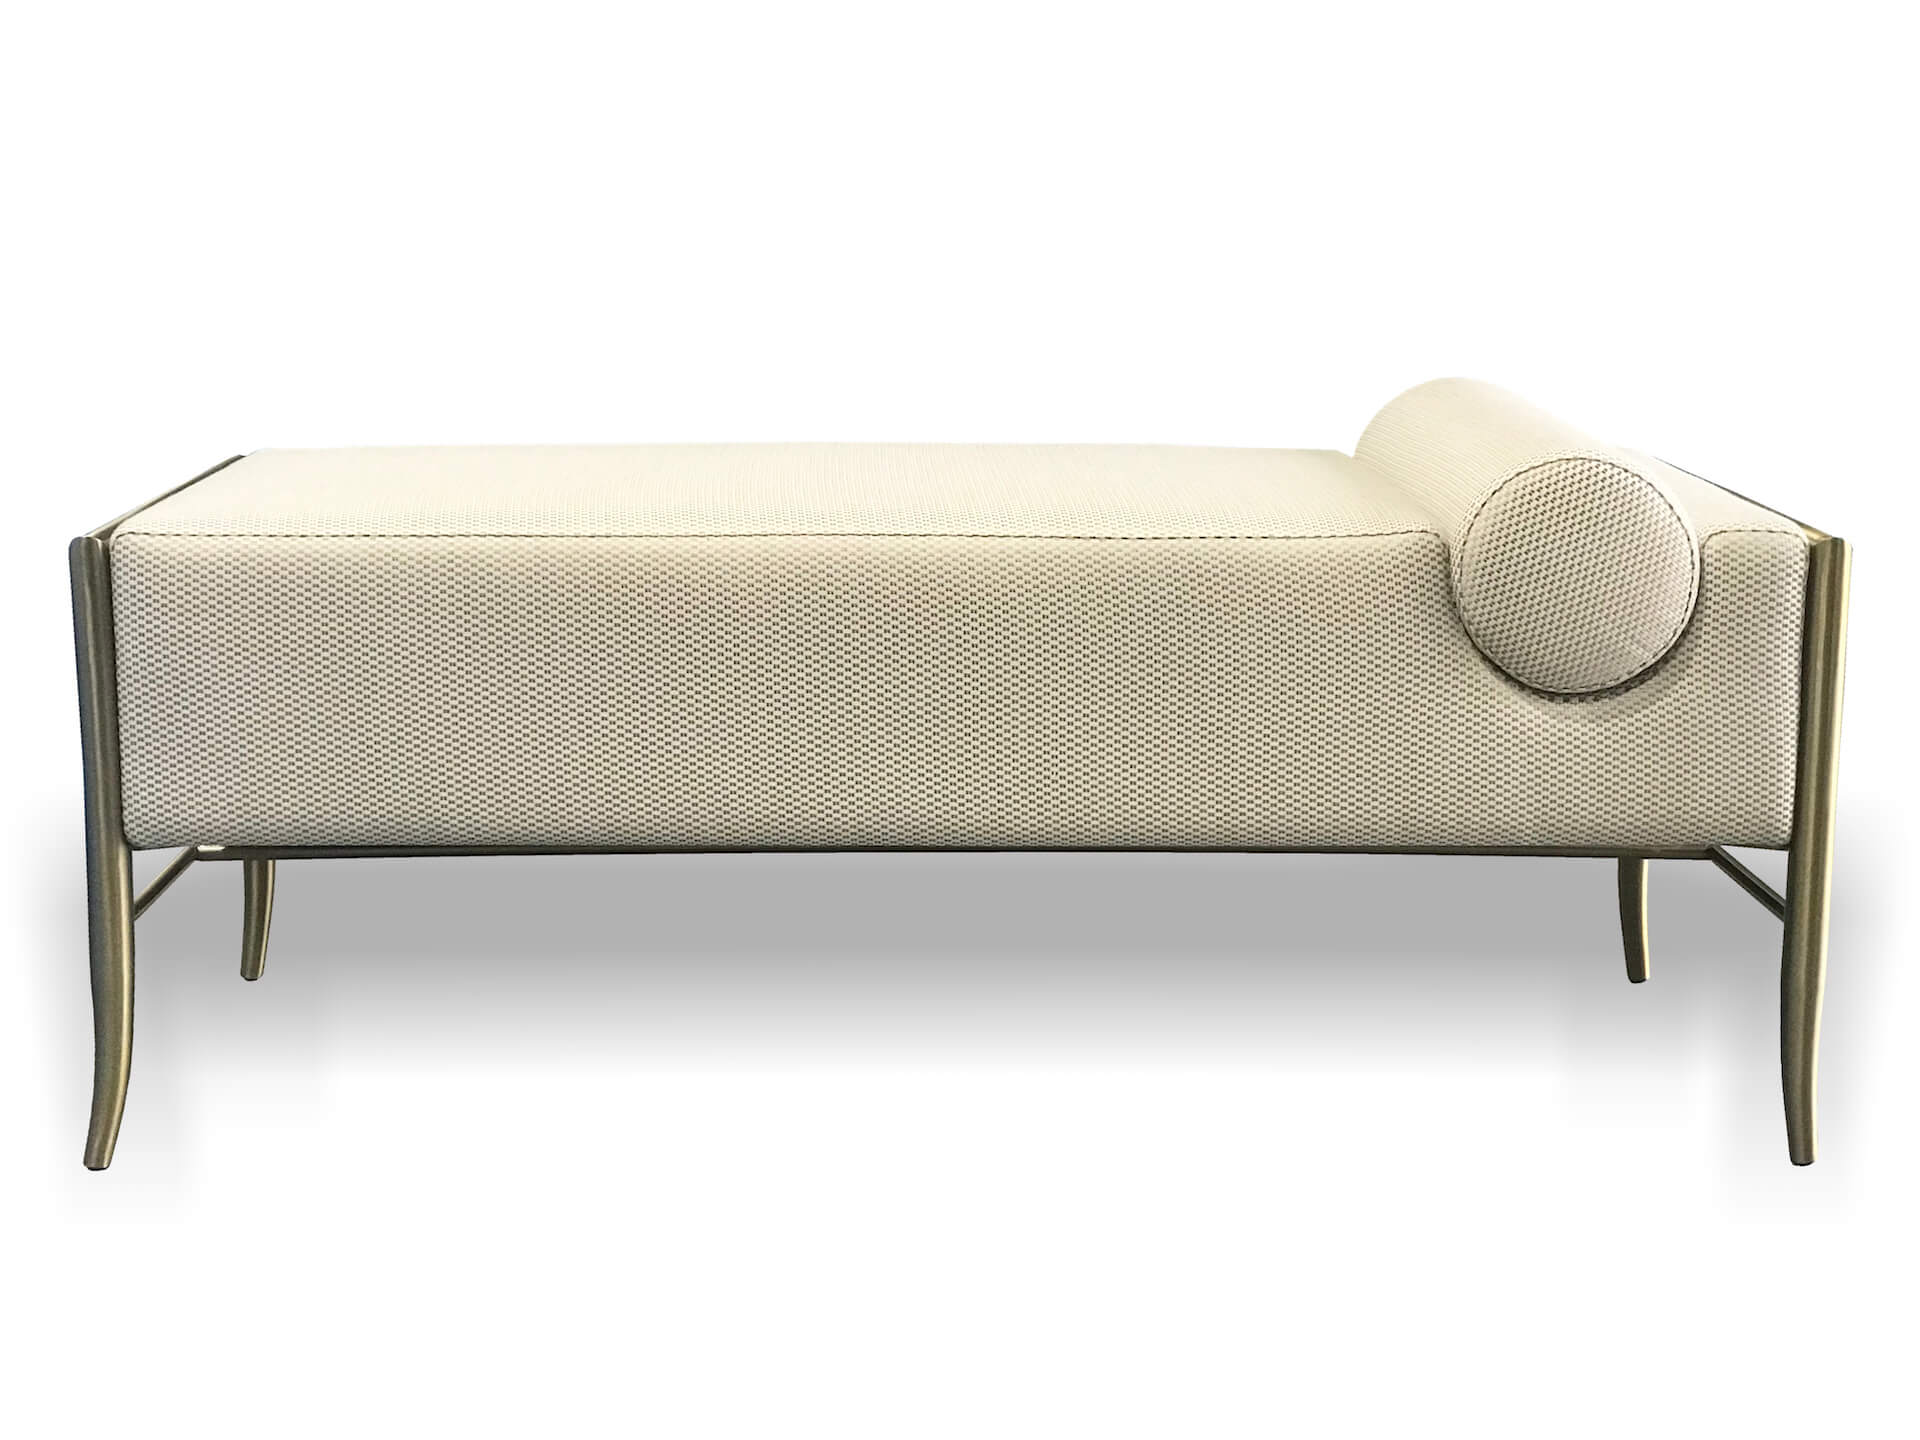 Bench with Bolster